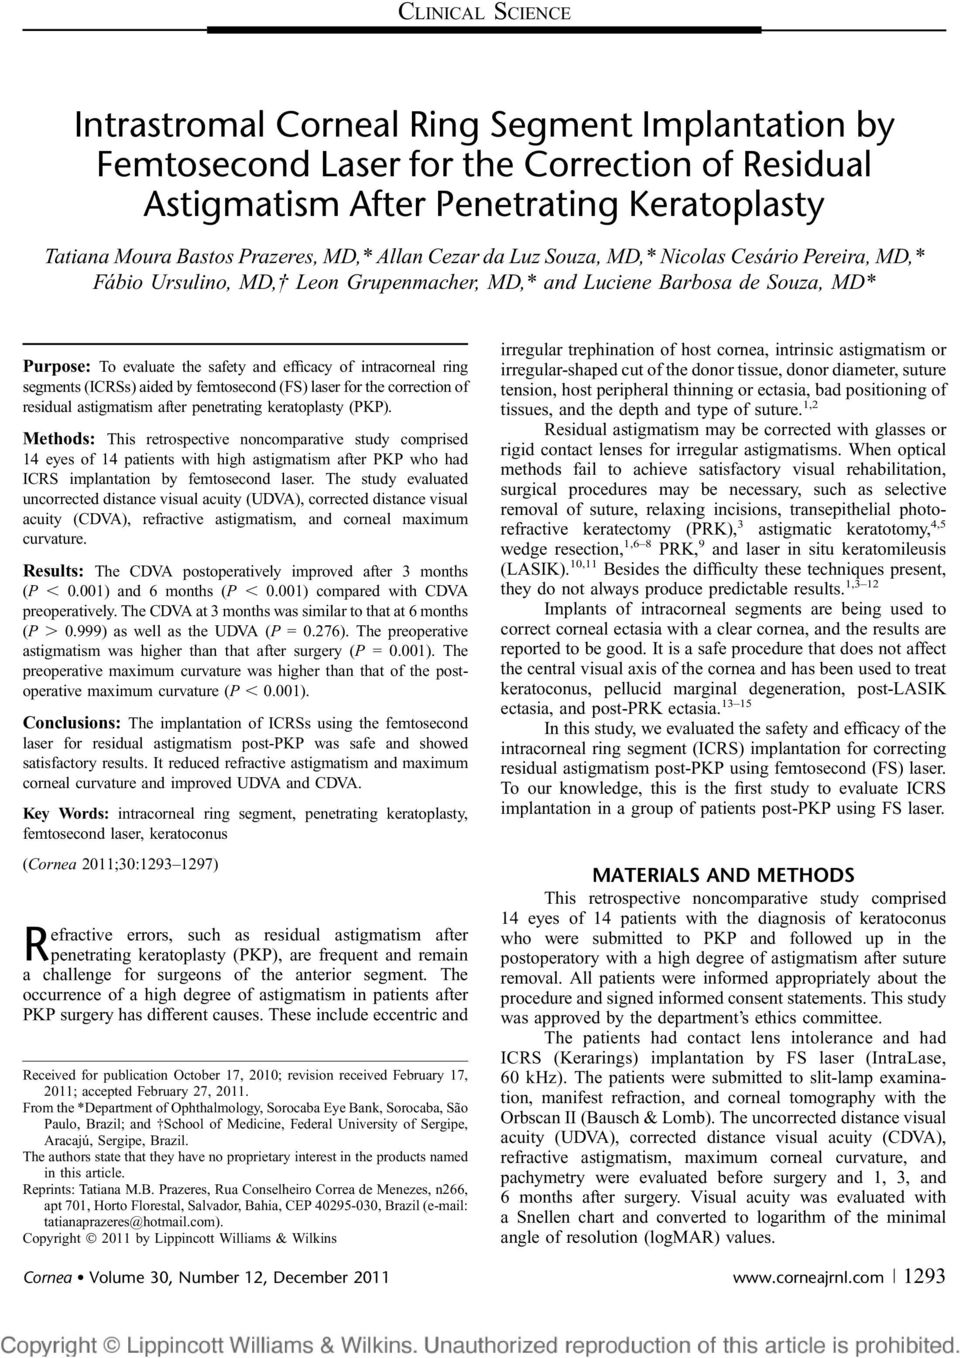 ring segments (ICRSs) aided by femtosecond (FS) laser for the correction of residual astigmatism after penetrating keratoplasty (PKP).